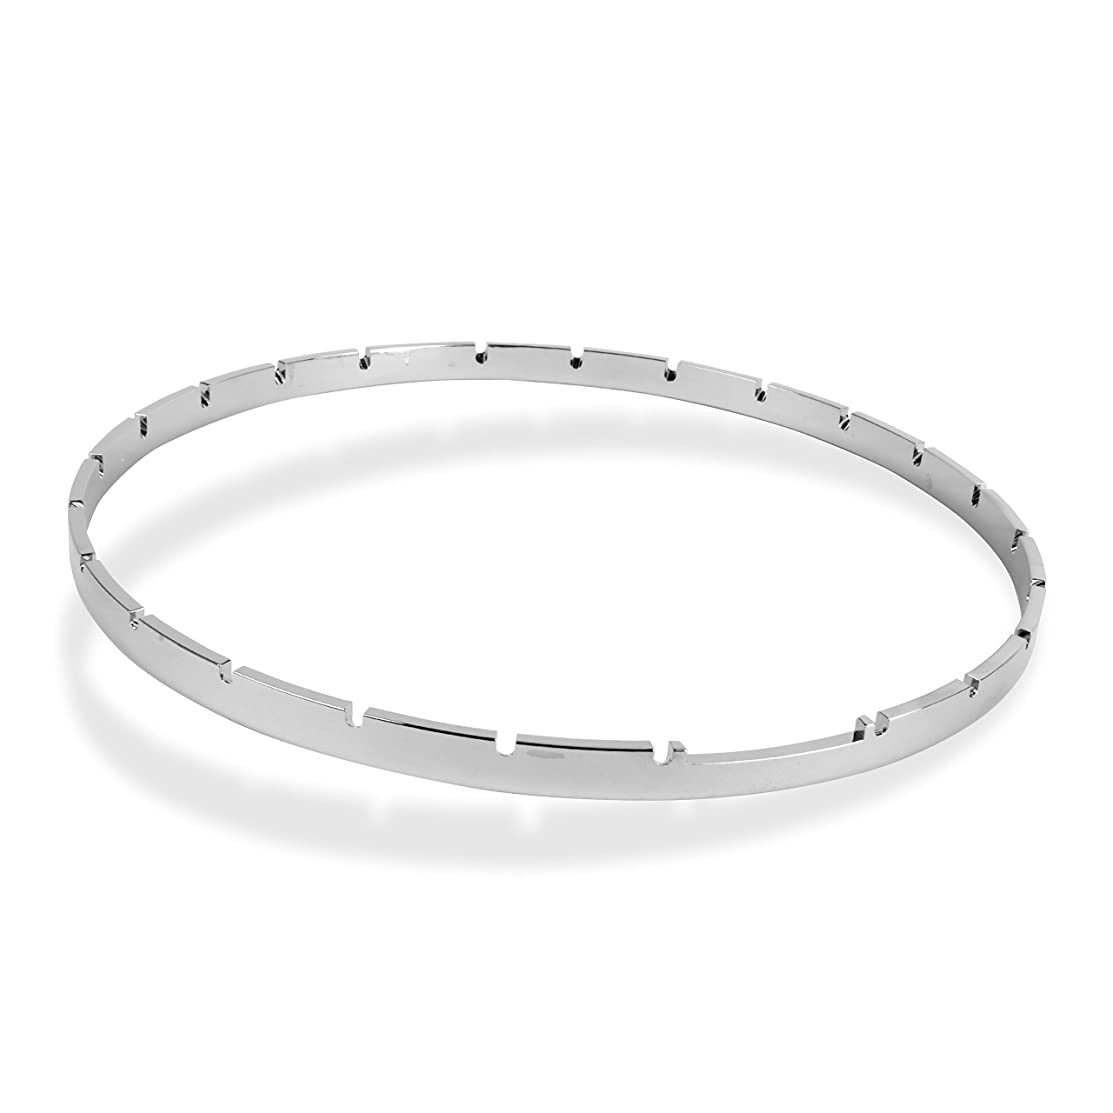 Five-Star Notched Banjo Tension Hoop, Nickel-Plated Brass, 11